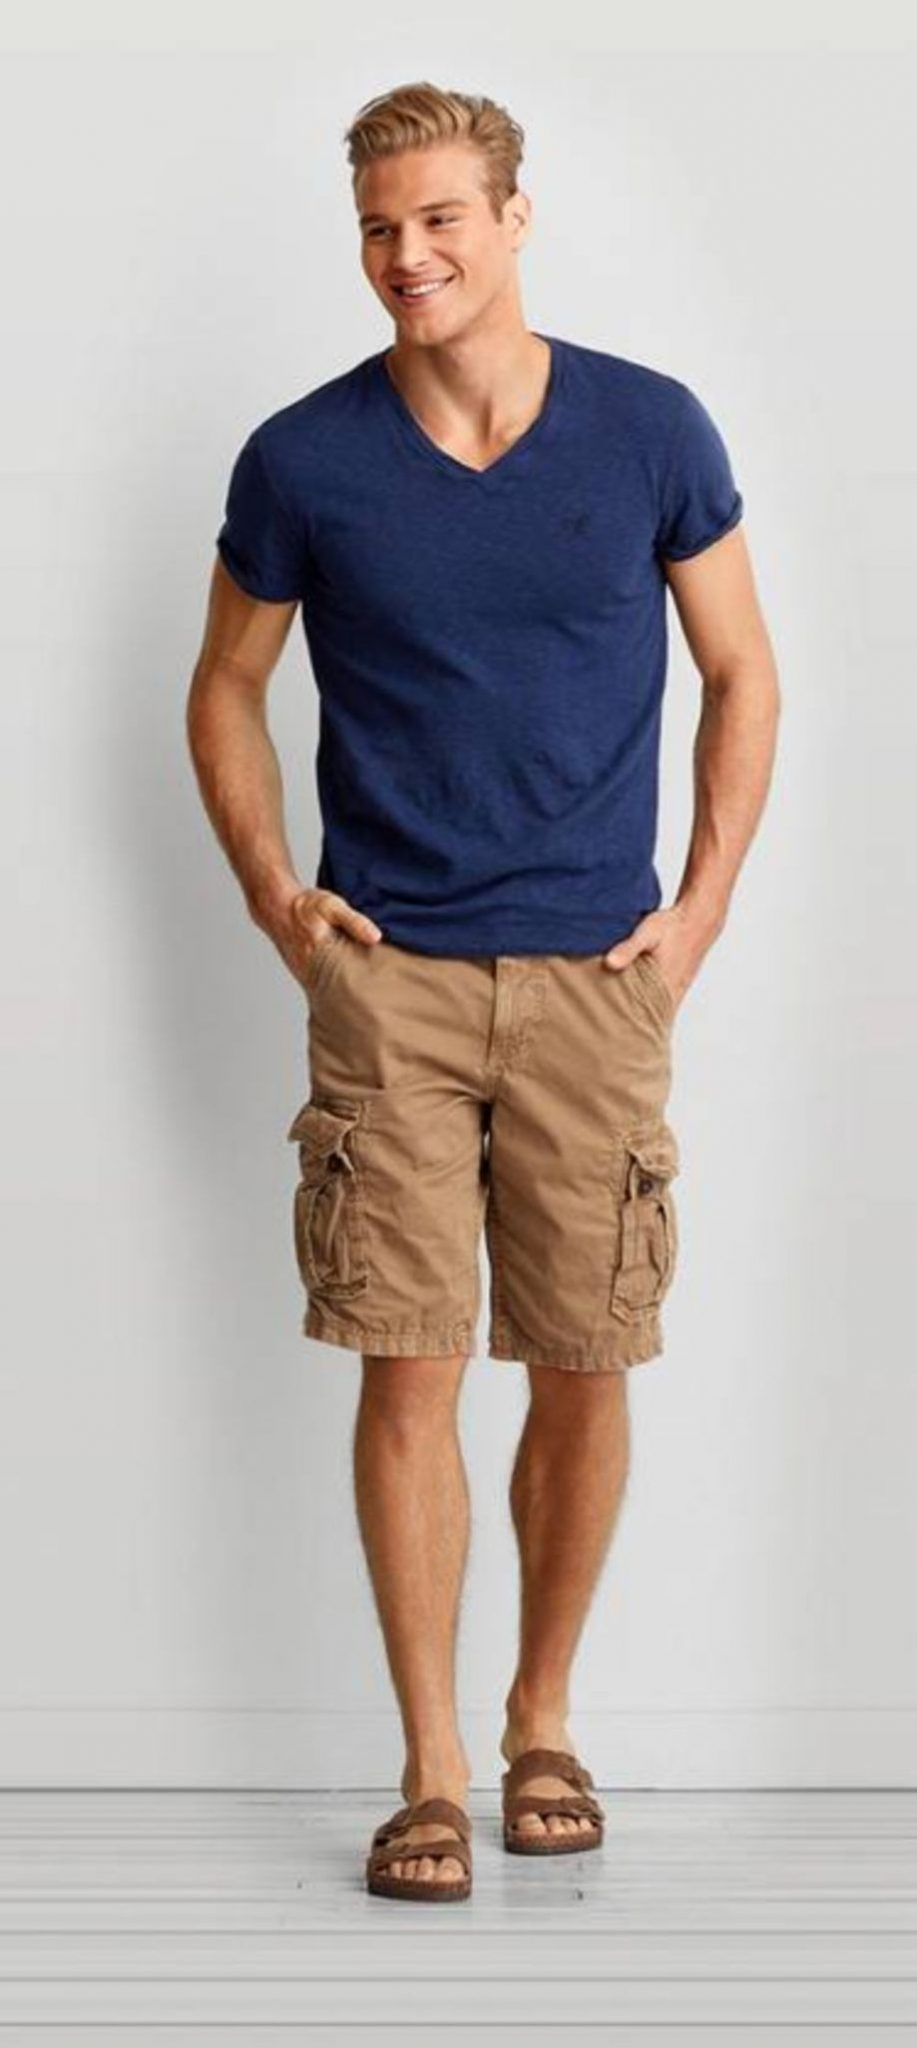 Cool Casual Men's Fashions Summer Outfits Ideas 38